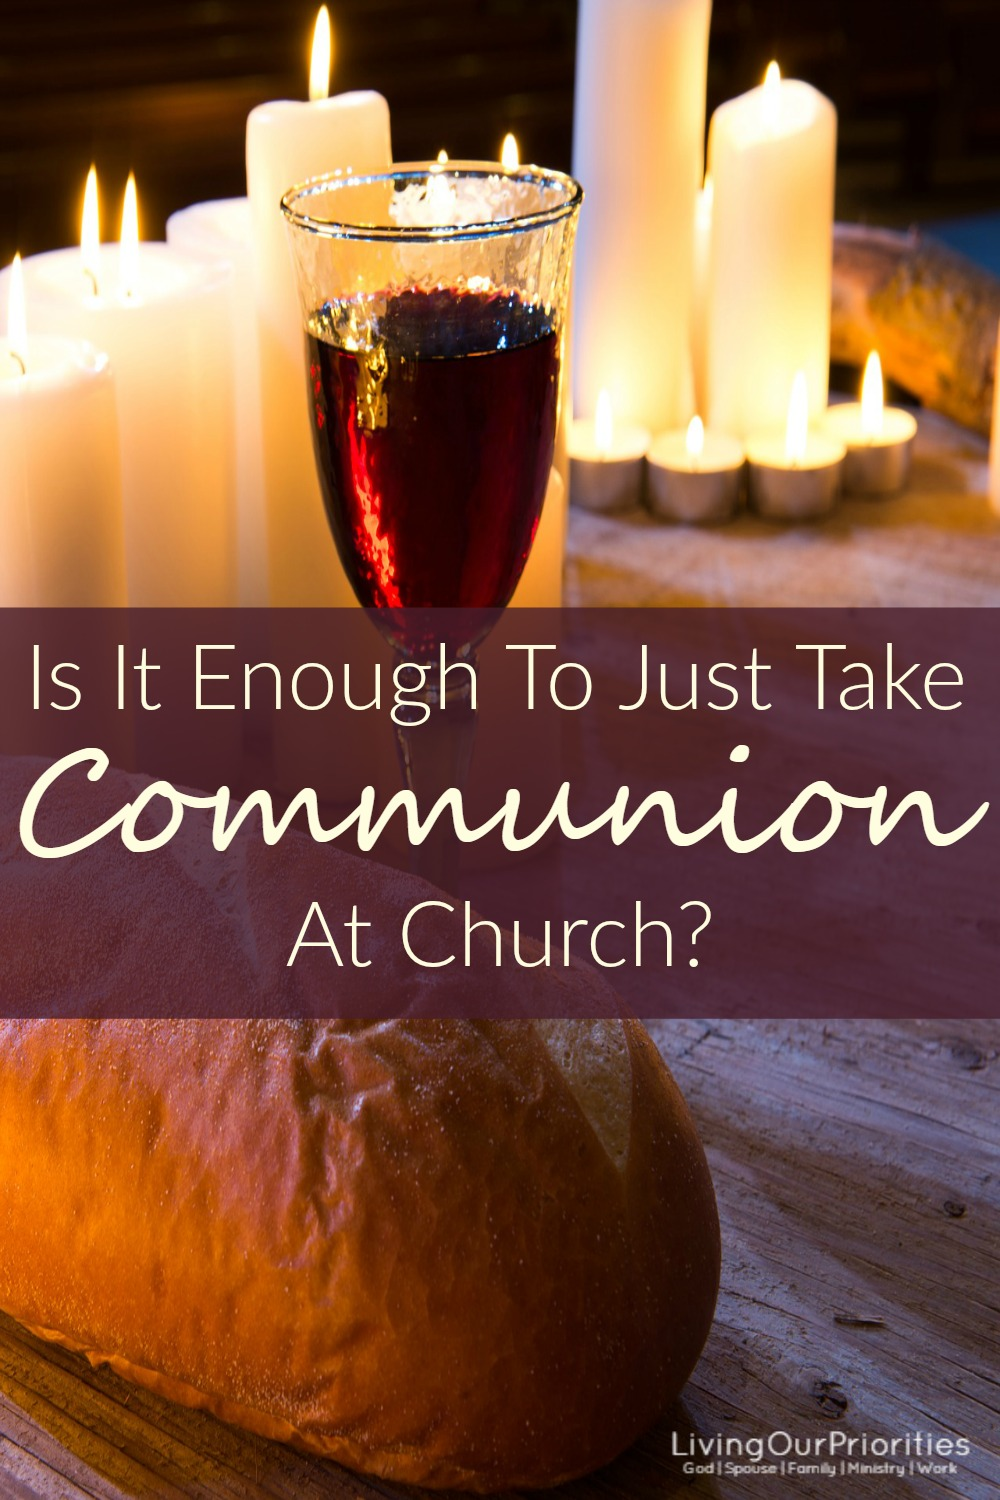 is it enough just to take communion at church? -